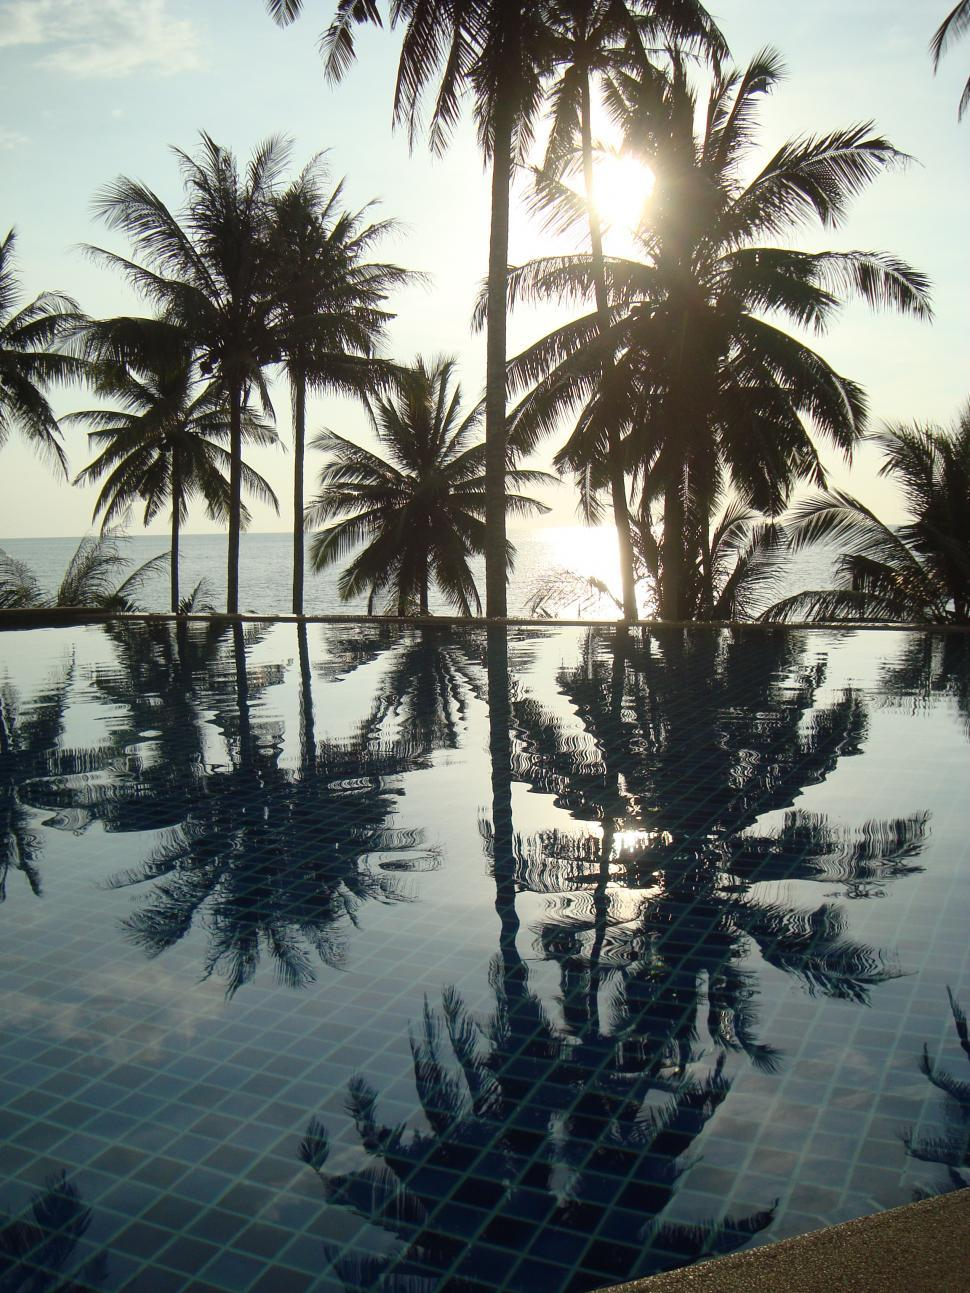 Download Free Stock Photo of Tropical Ocean View Swimming Pool